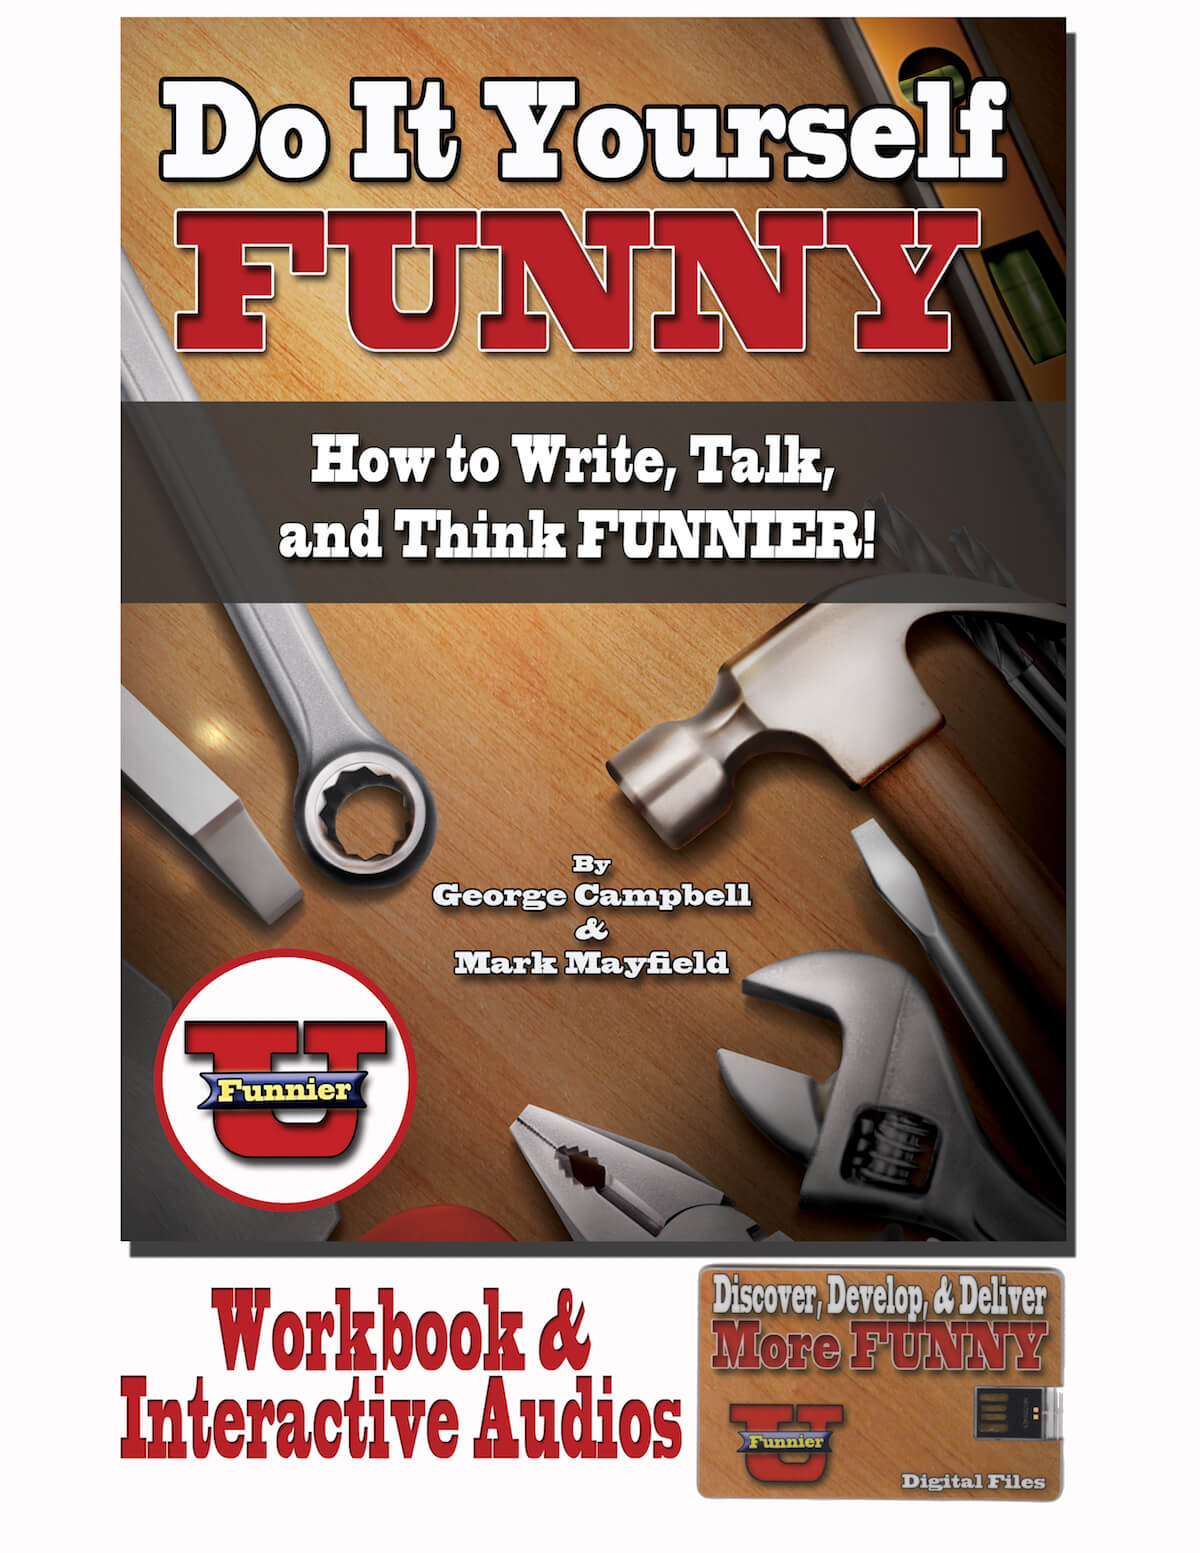 Workbook Bundle